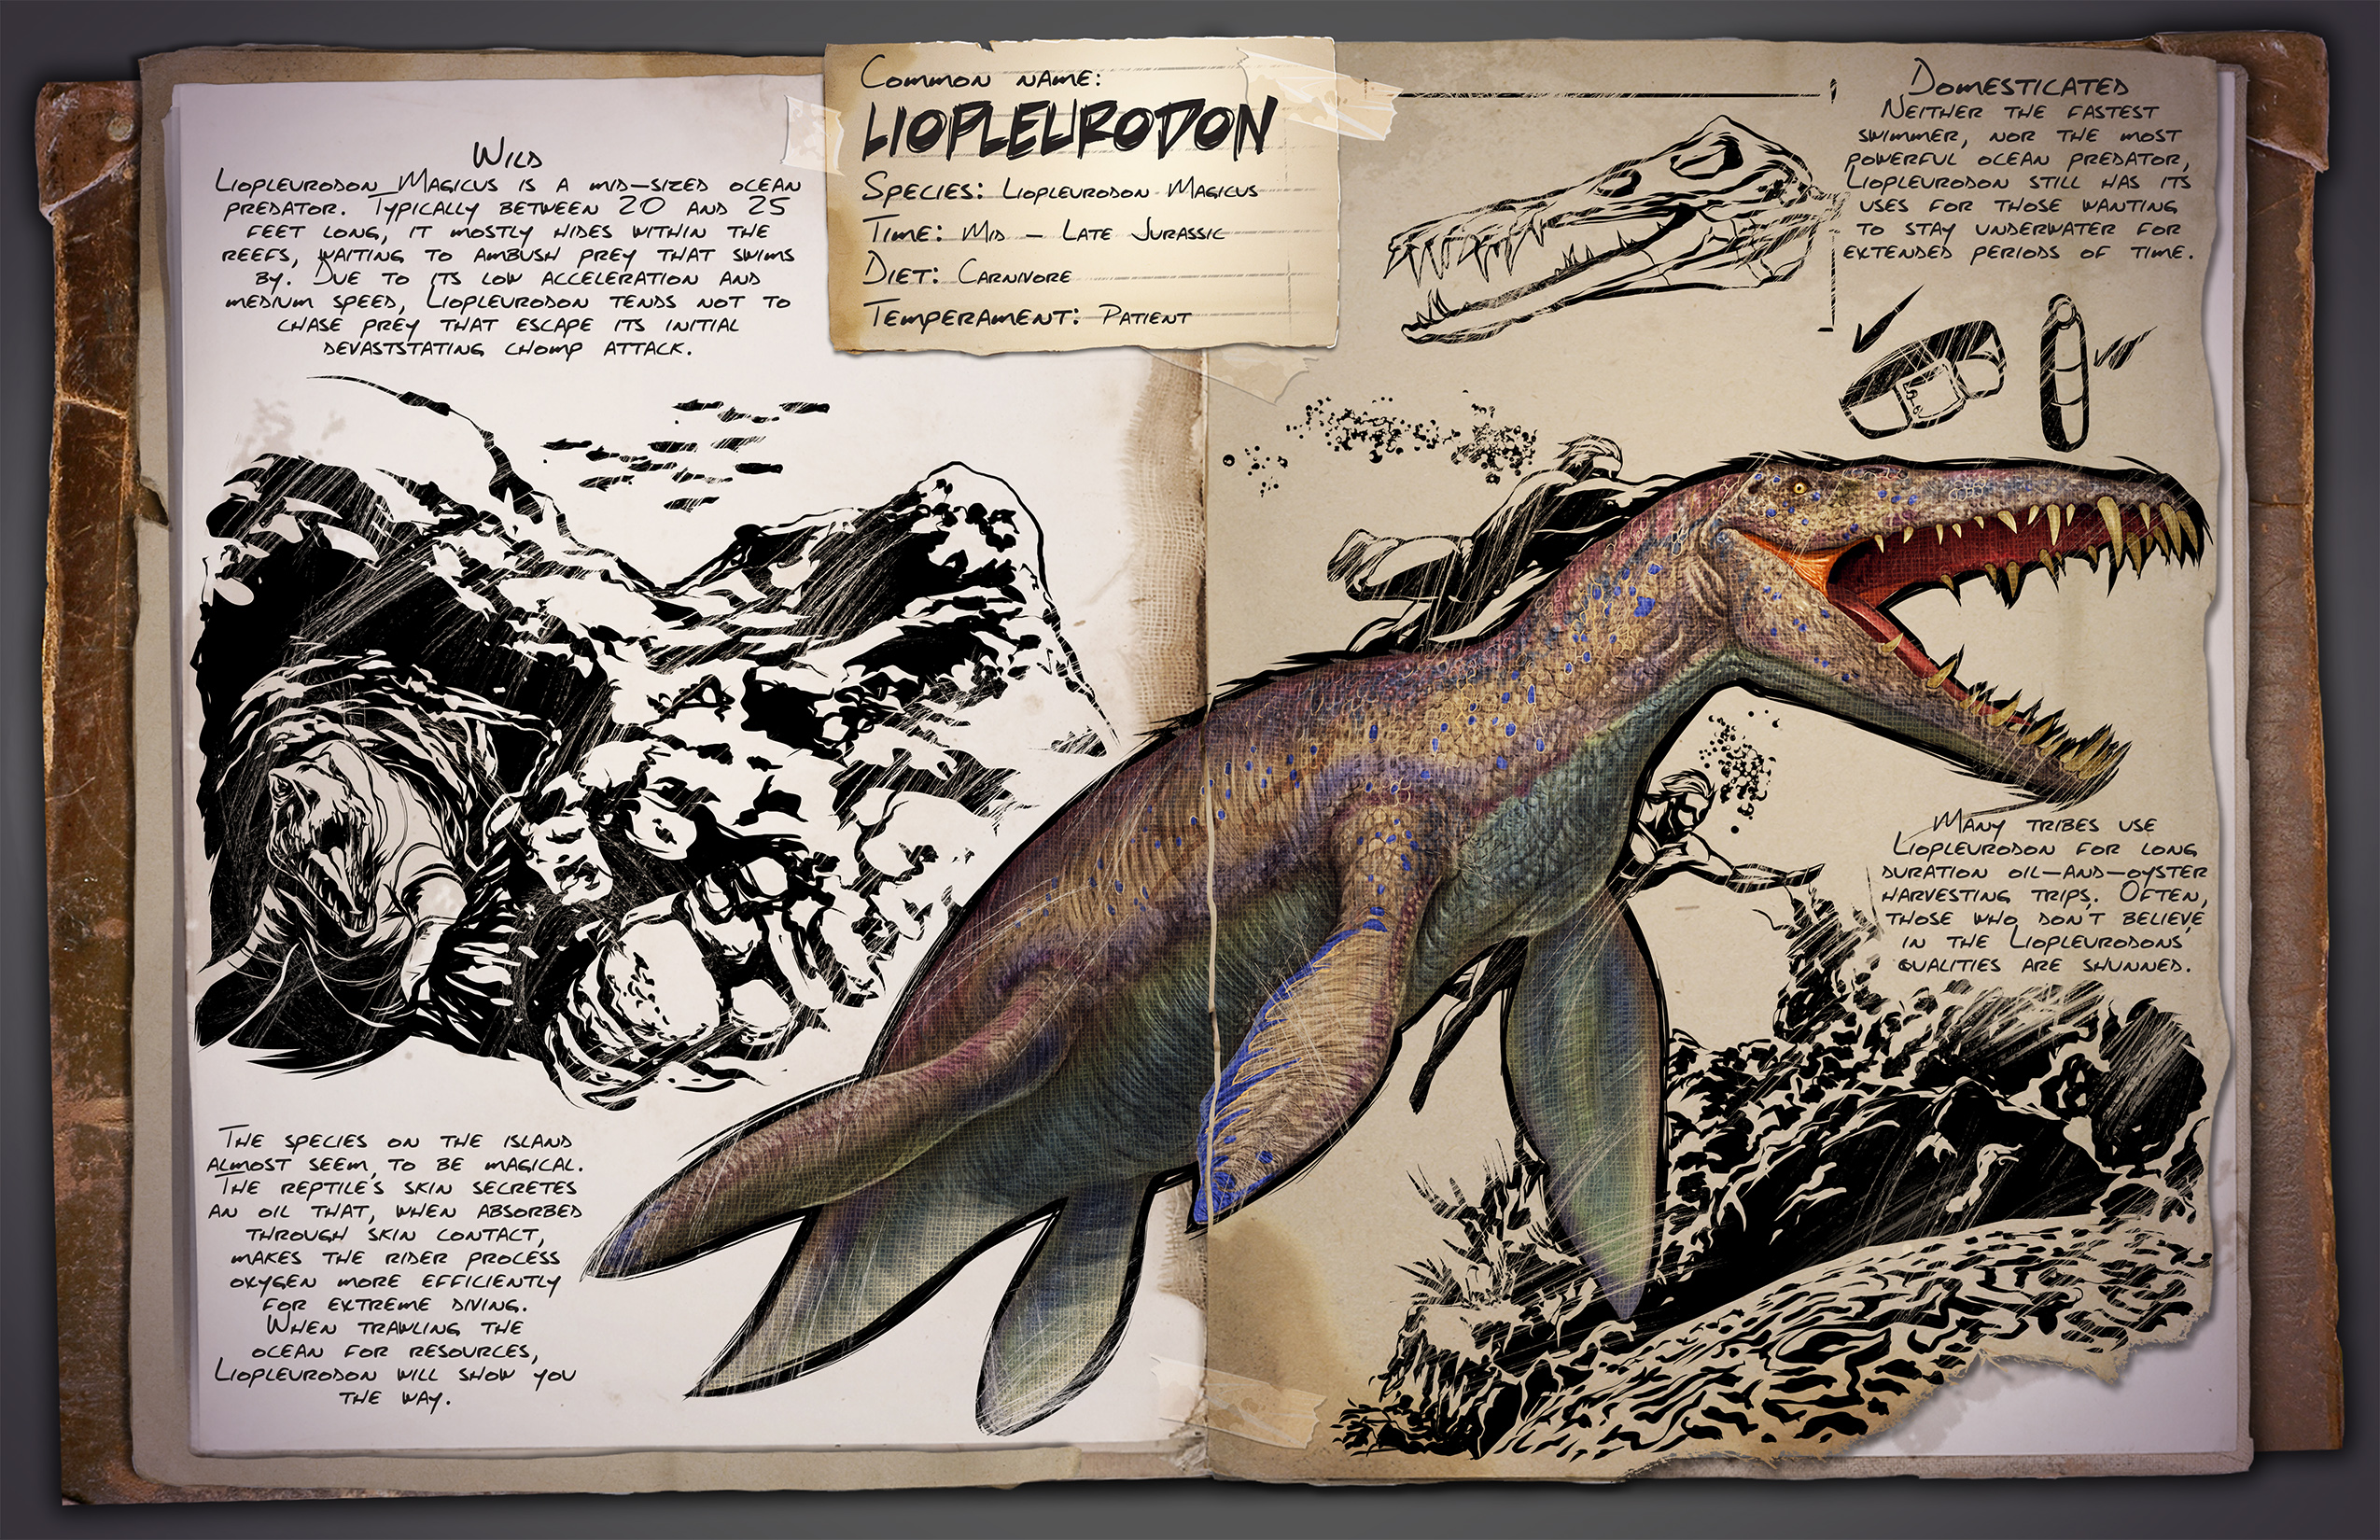 Liopleurodon Ark Survival Evolved Wiki Fandom Using this ark stat calculator can help you determine if the creature has increased its stats for a specific stat you're interested in. liopleurodon ark survival evolved